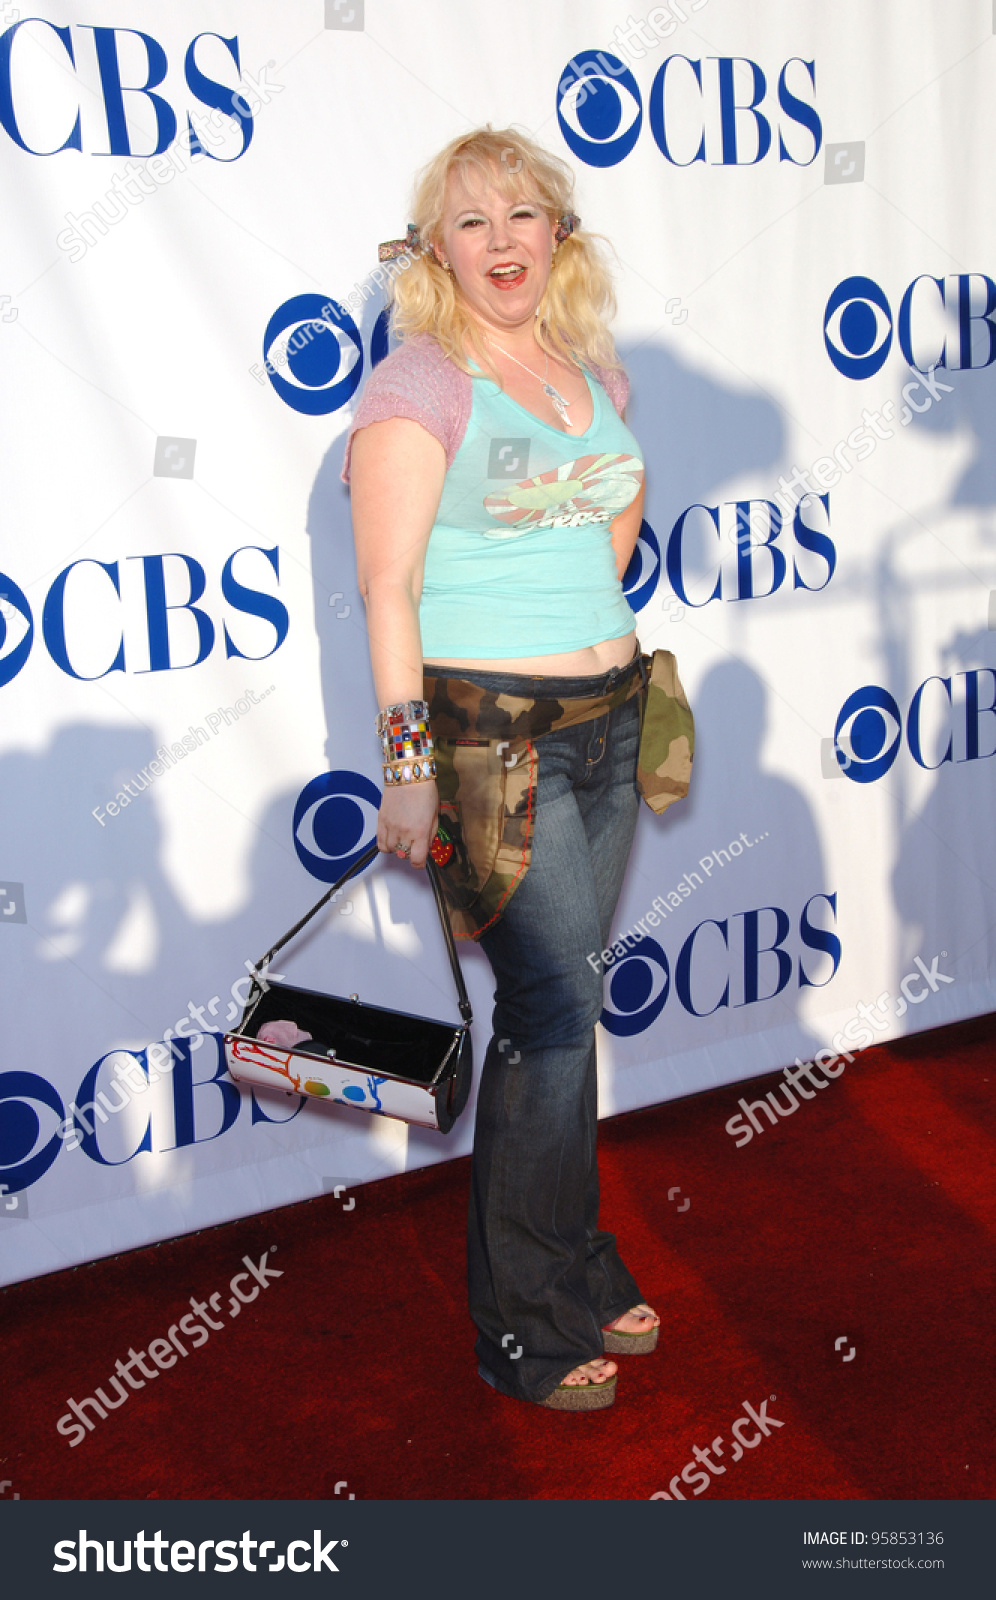 Communication on this topic: Amy Tolsky, kirsten-vangsness/